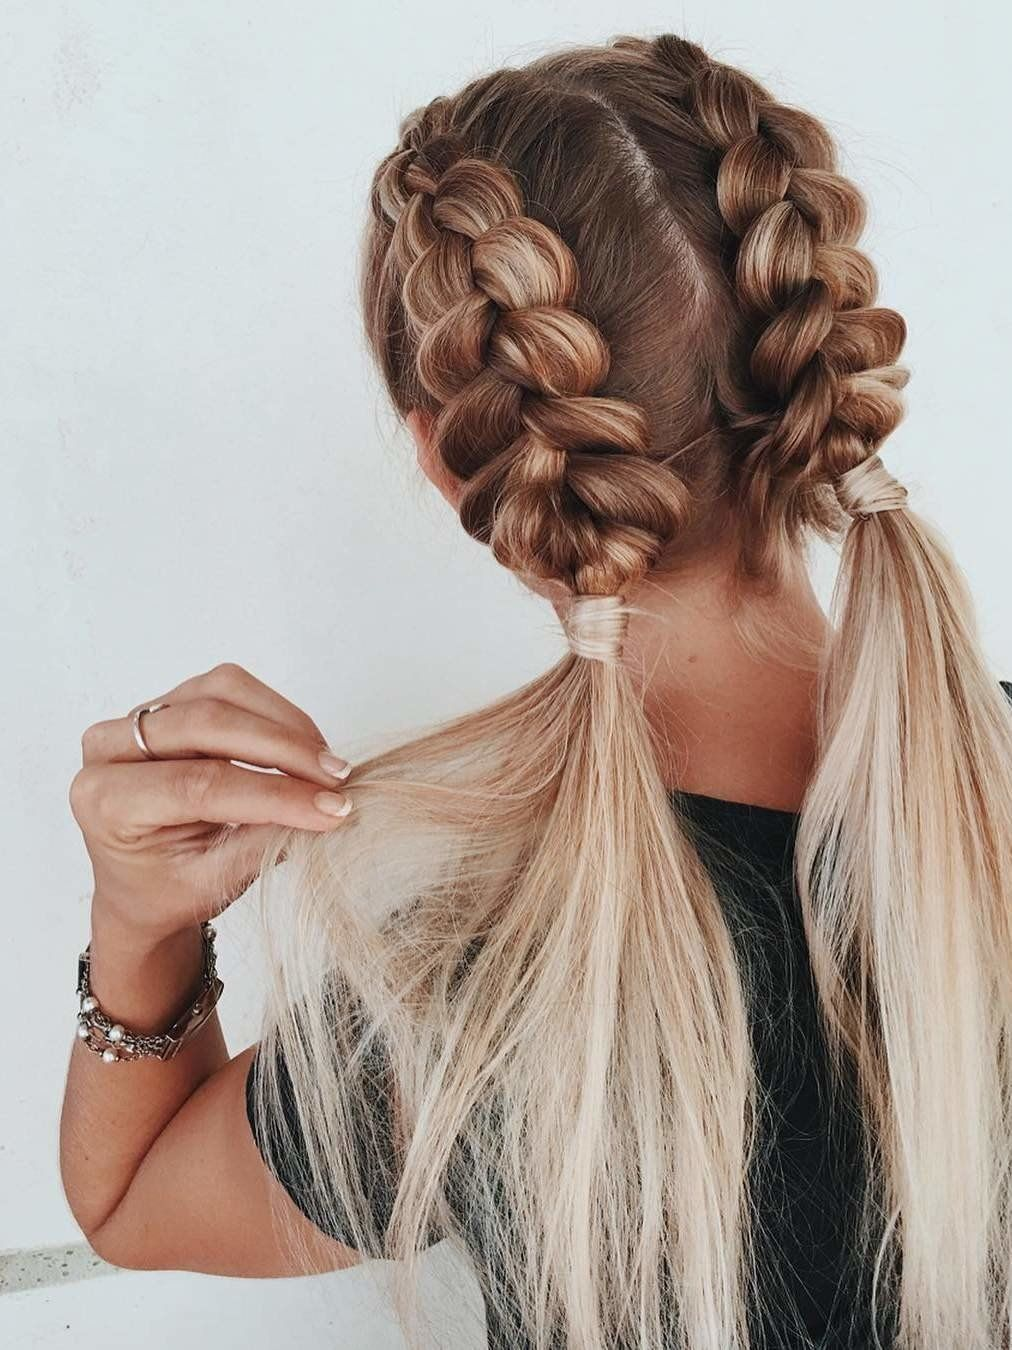 10 Braided Hairstyles That People Are Loving on Pinterest  Braided